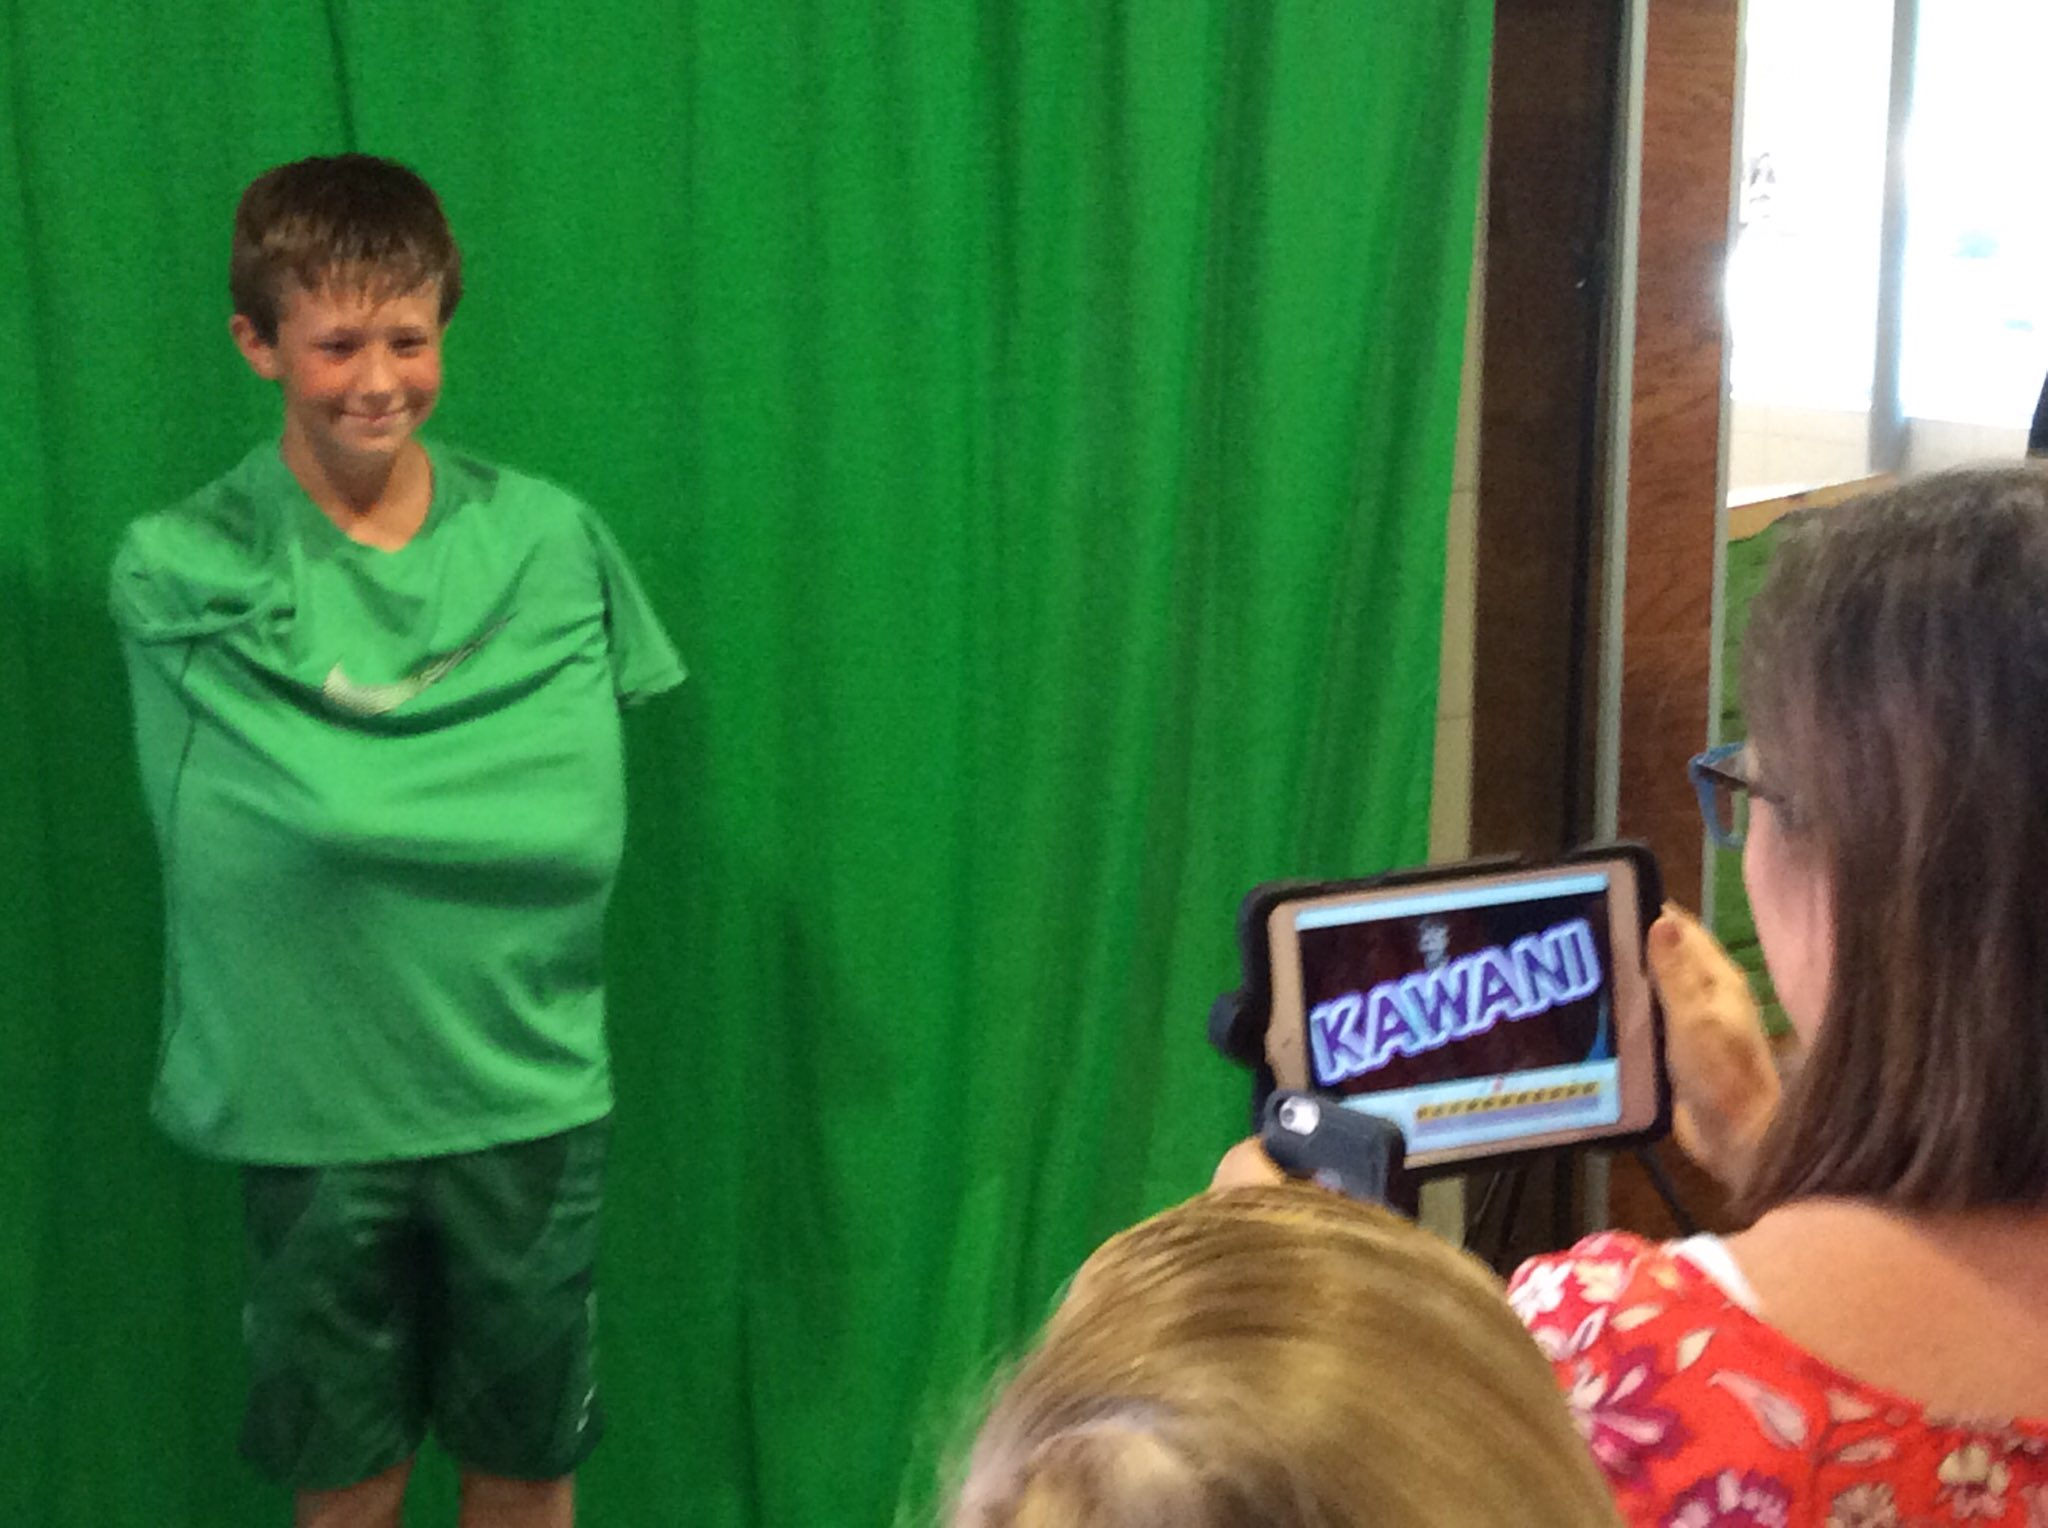 Floating heads are also fun with the #greenscreen! #txlchat @DoInkTweets https://t.co/5CQrSAwgeB